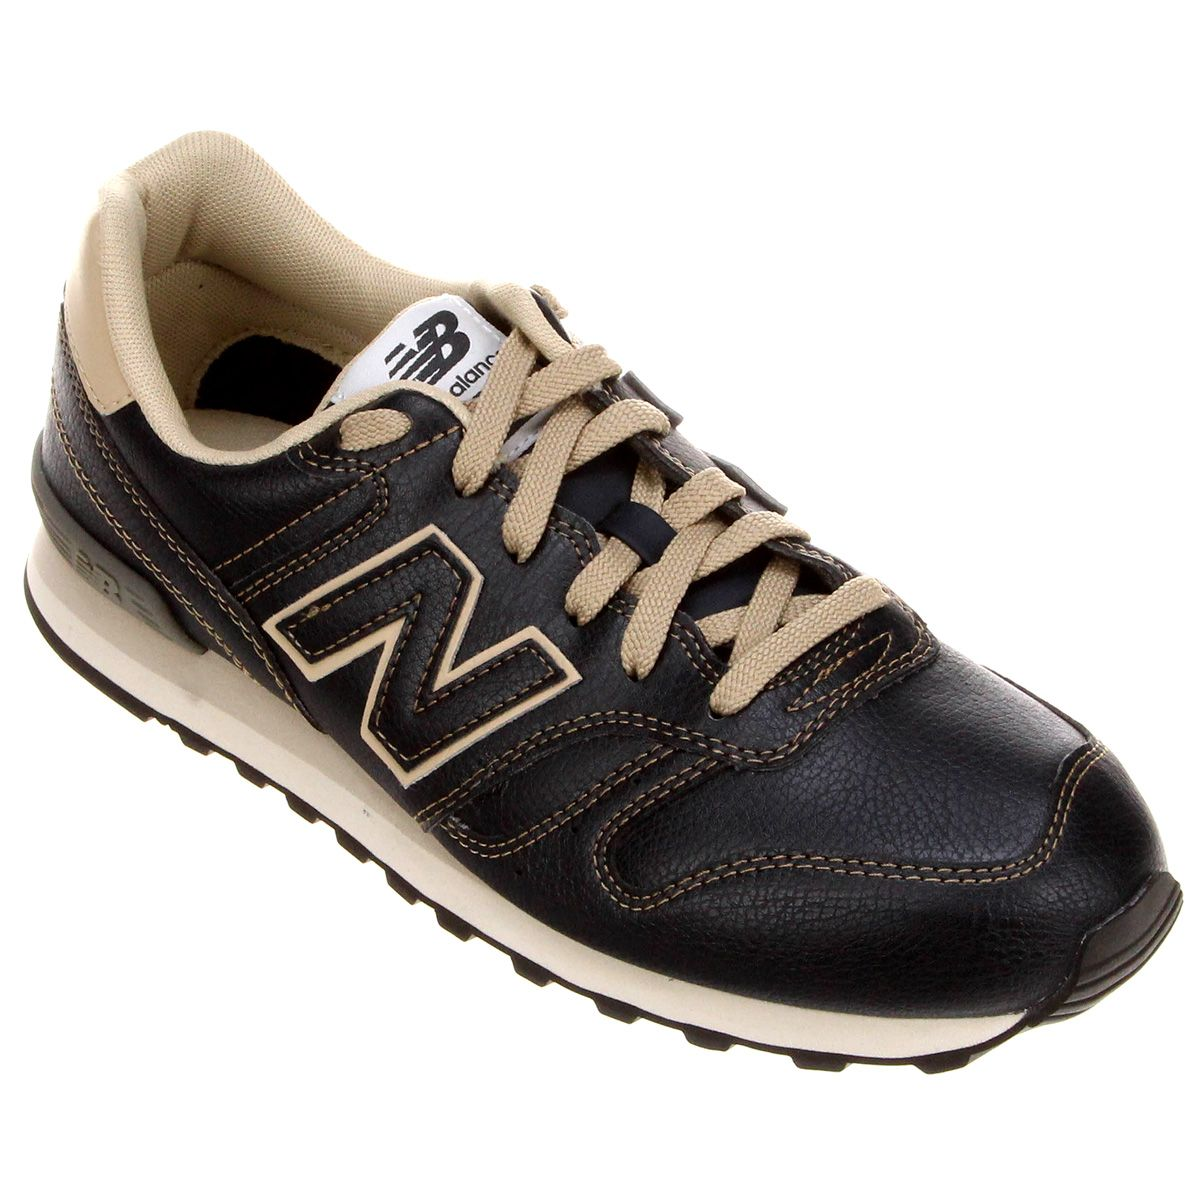 Explore New Balance, Converse, and more!